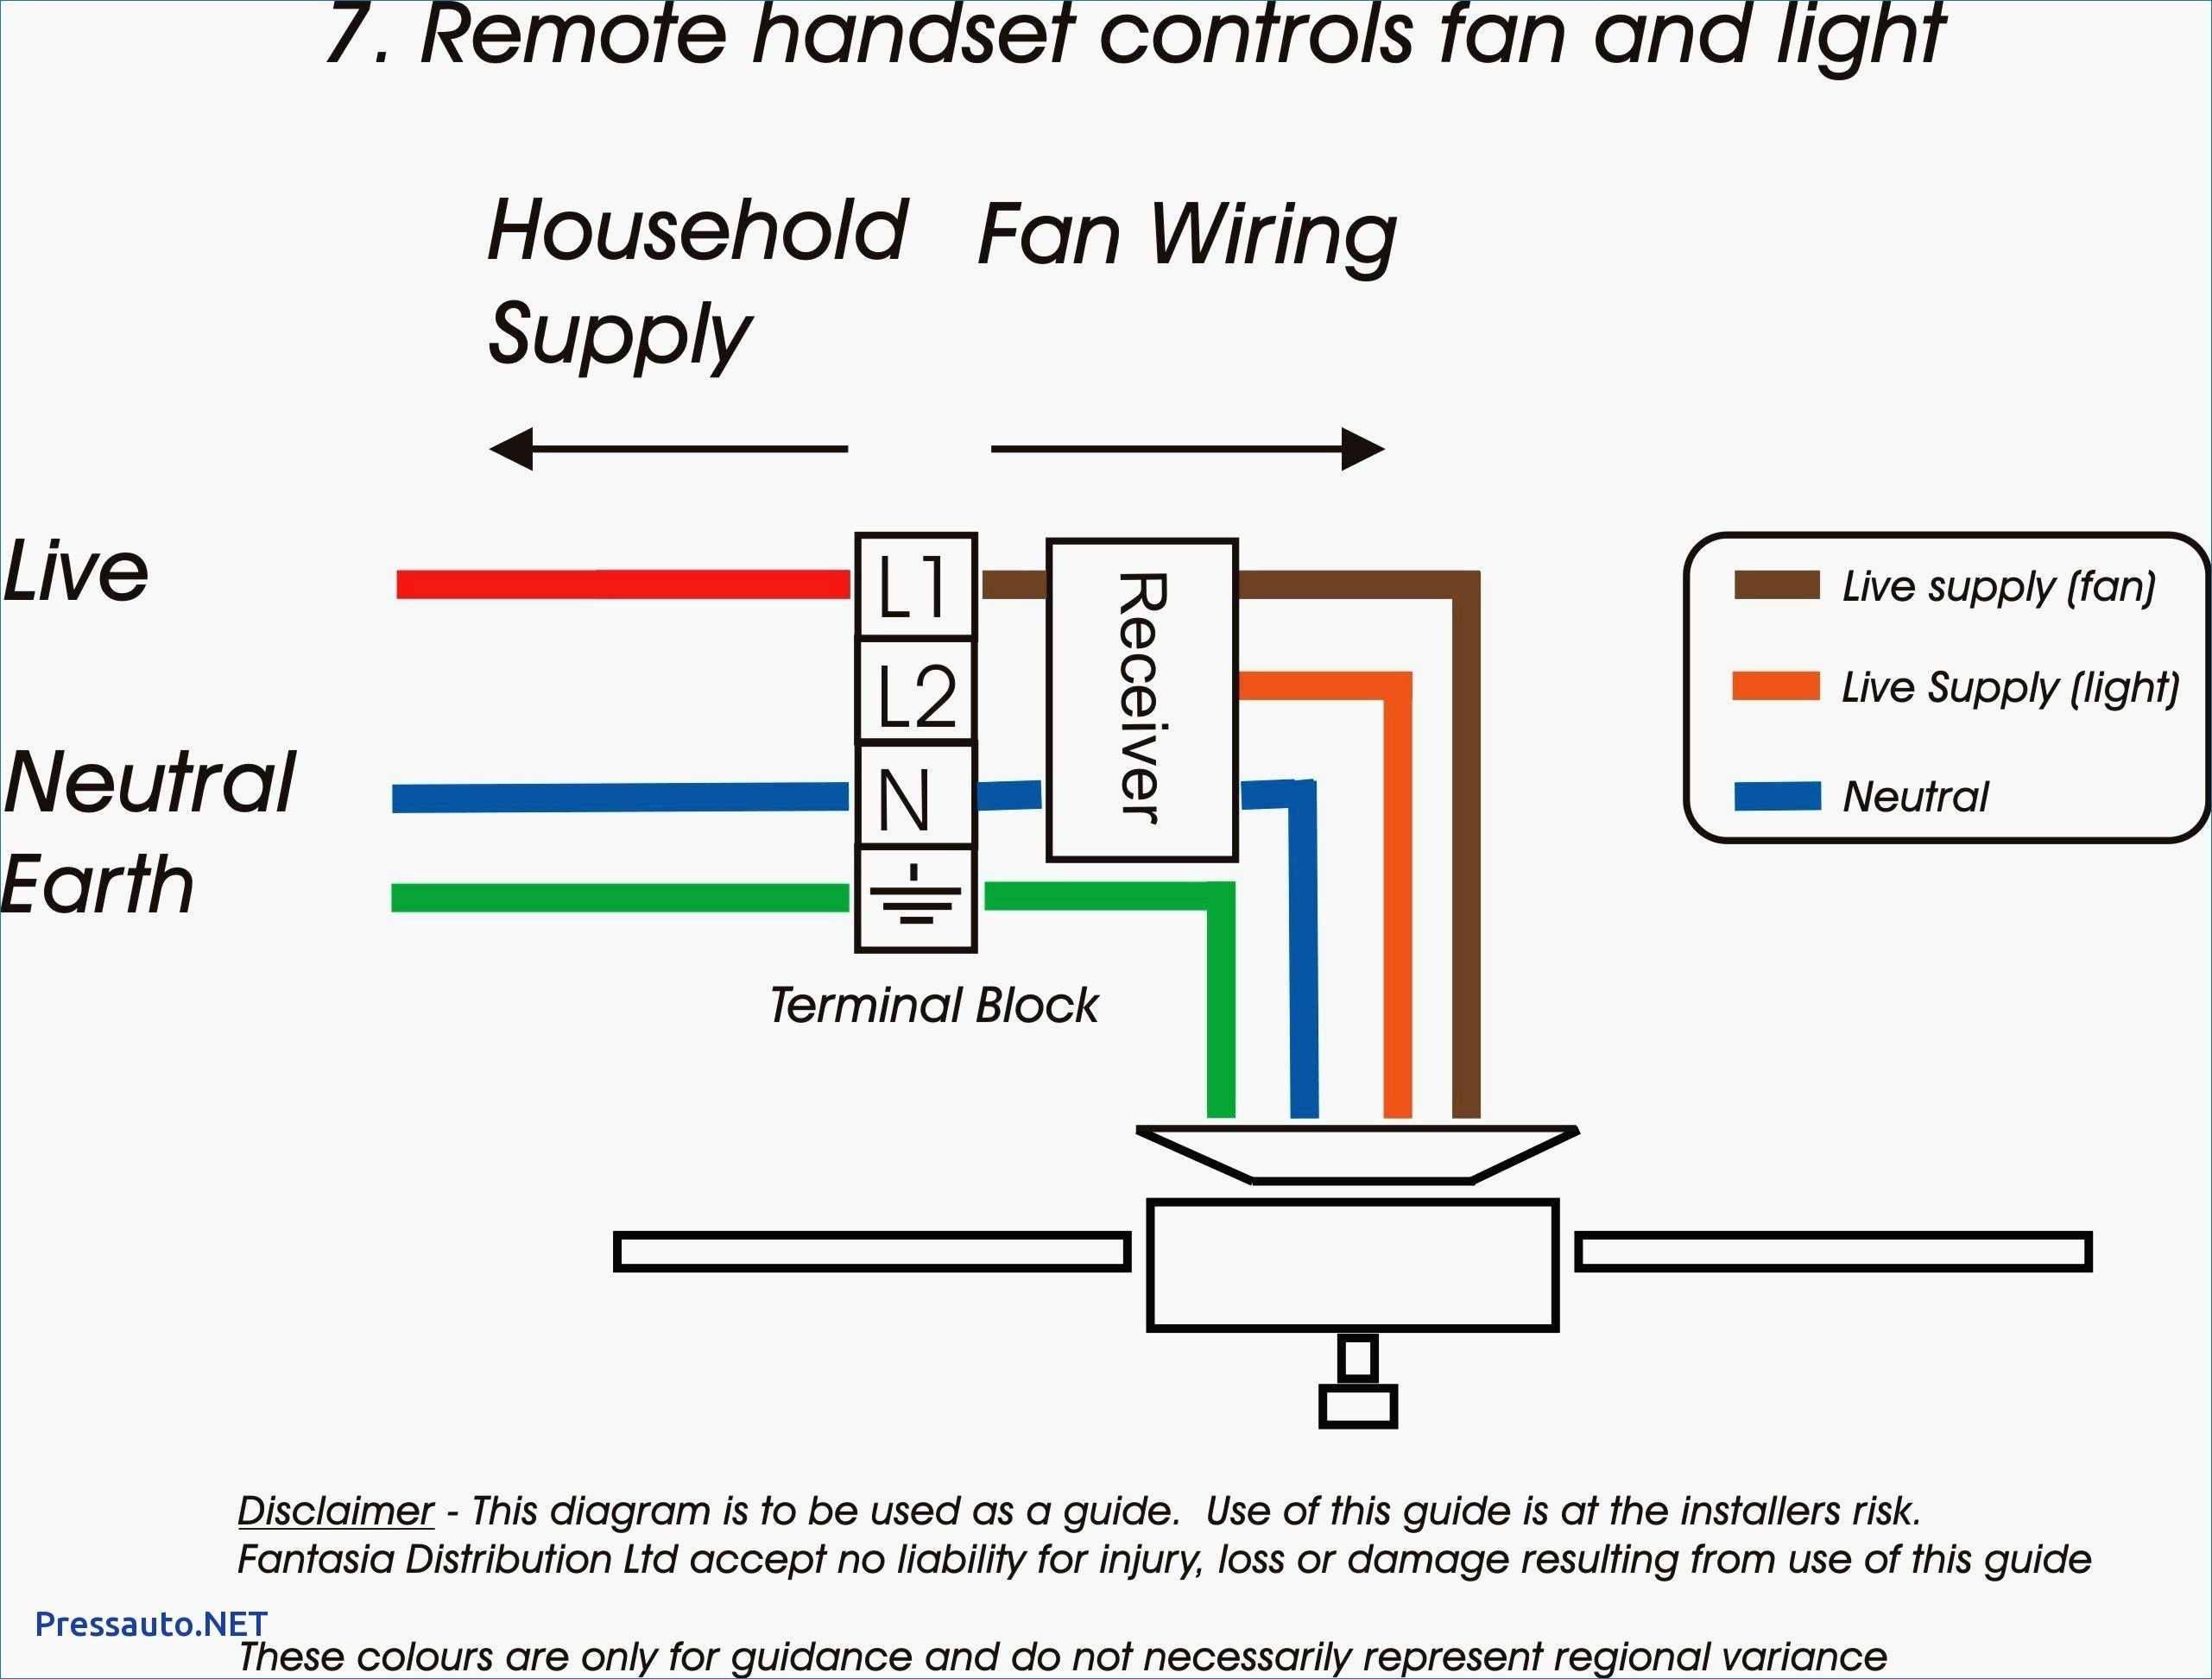 3 Position Selector Switch Wiring Diagram Awesome 3 Position Selector Switch Wiring Diagram – Wiring Diagram Of 3 Position Selector Switch Wiring Diagram